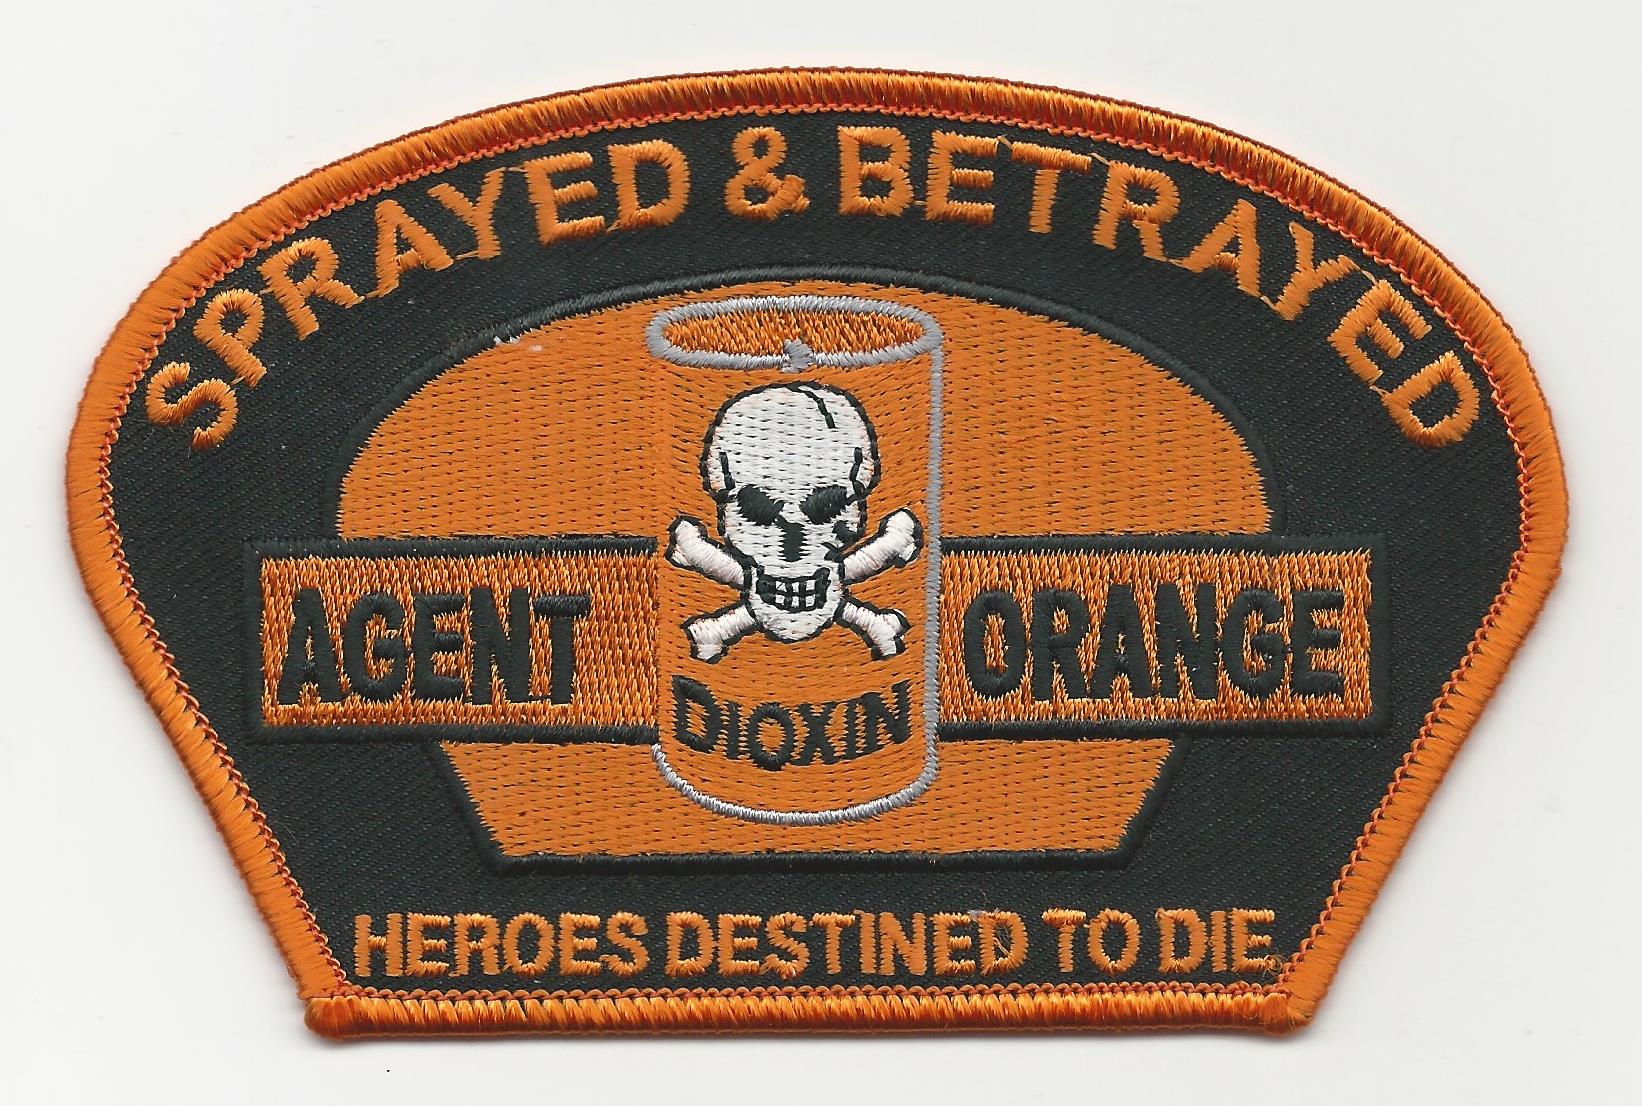 SPRAYED & BETRAYED HEROES DESTINED TO DIE PATCHES